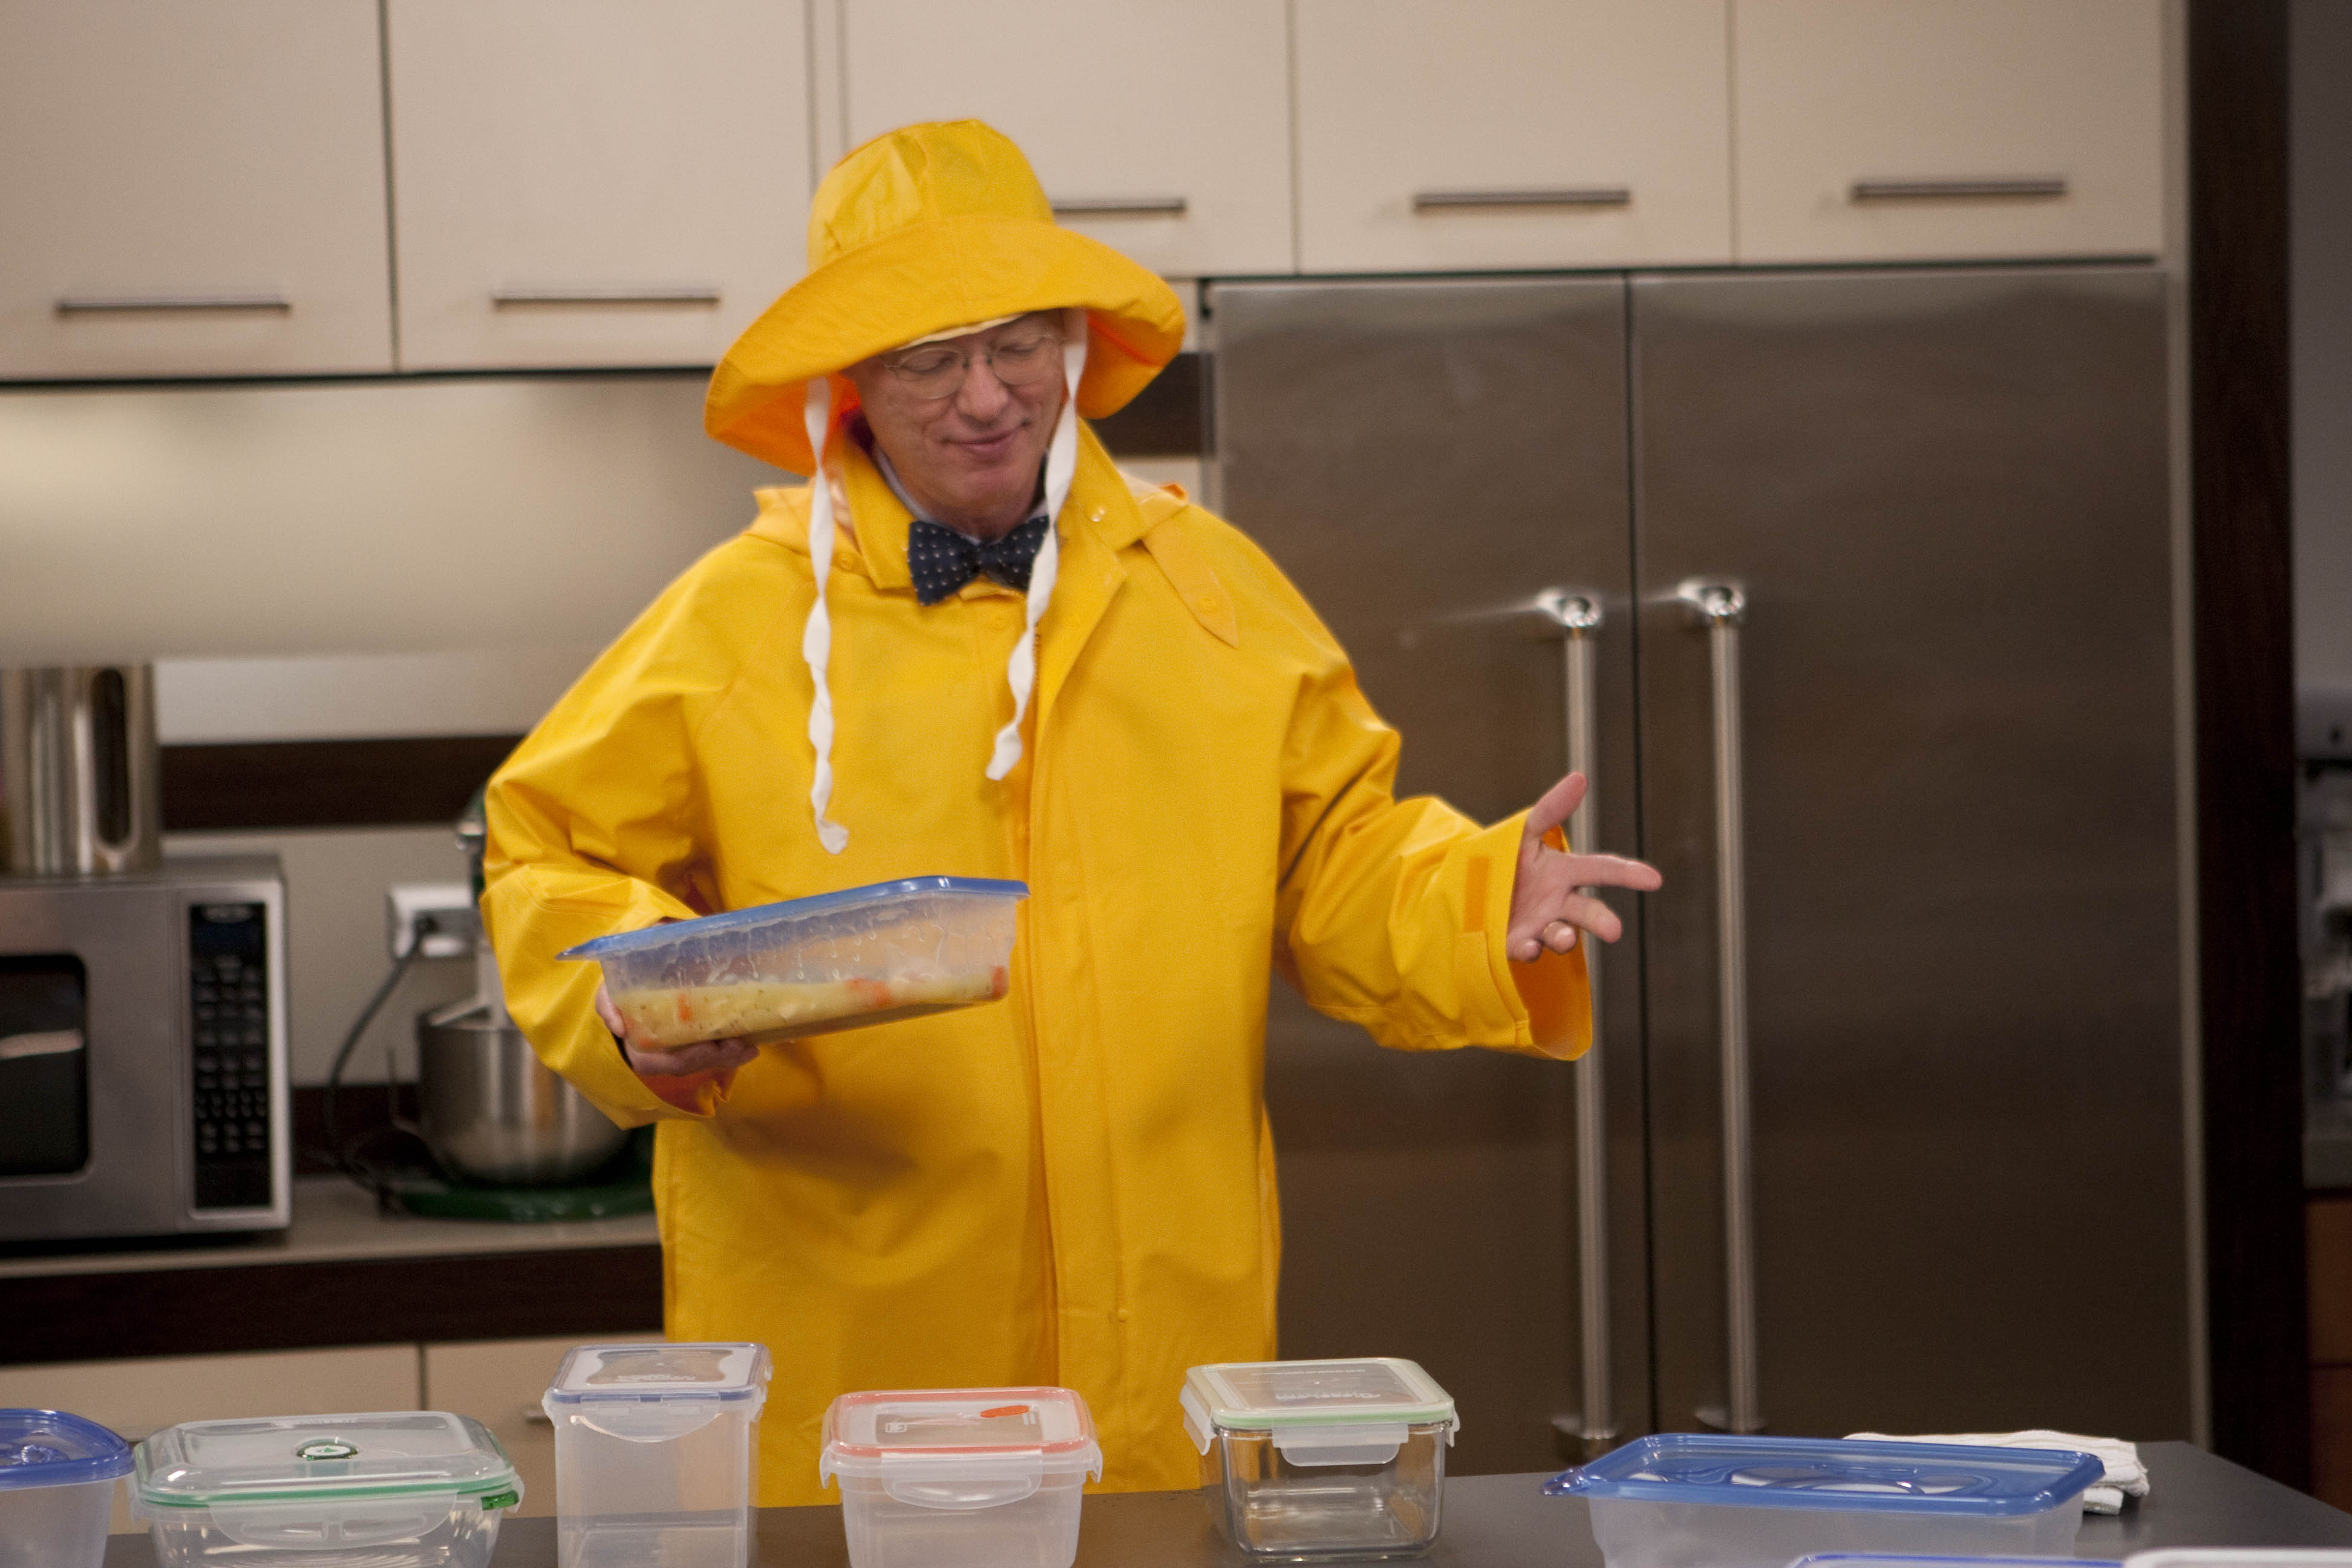 Americas test kitchen tv costumes christopher kimball blog Christopher s kitchen